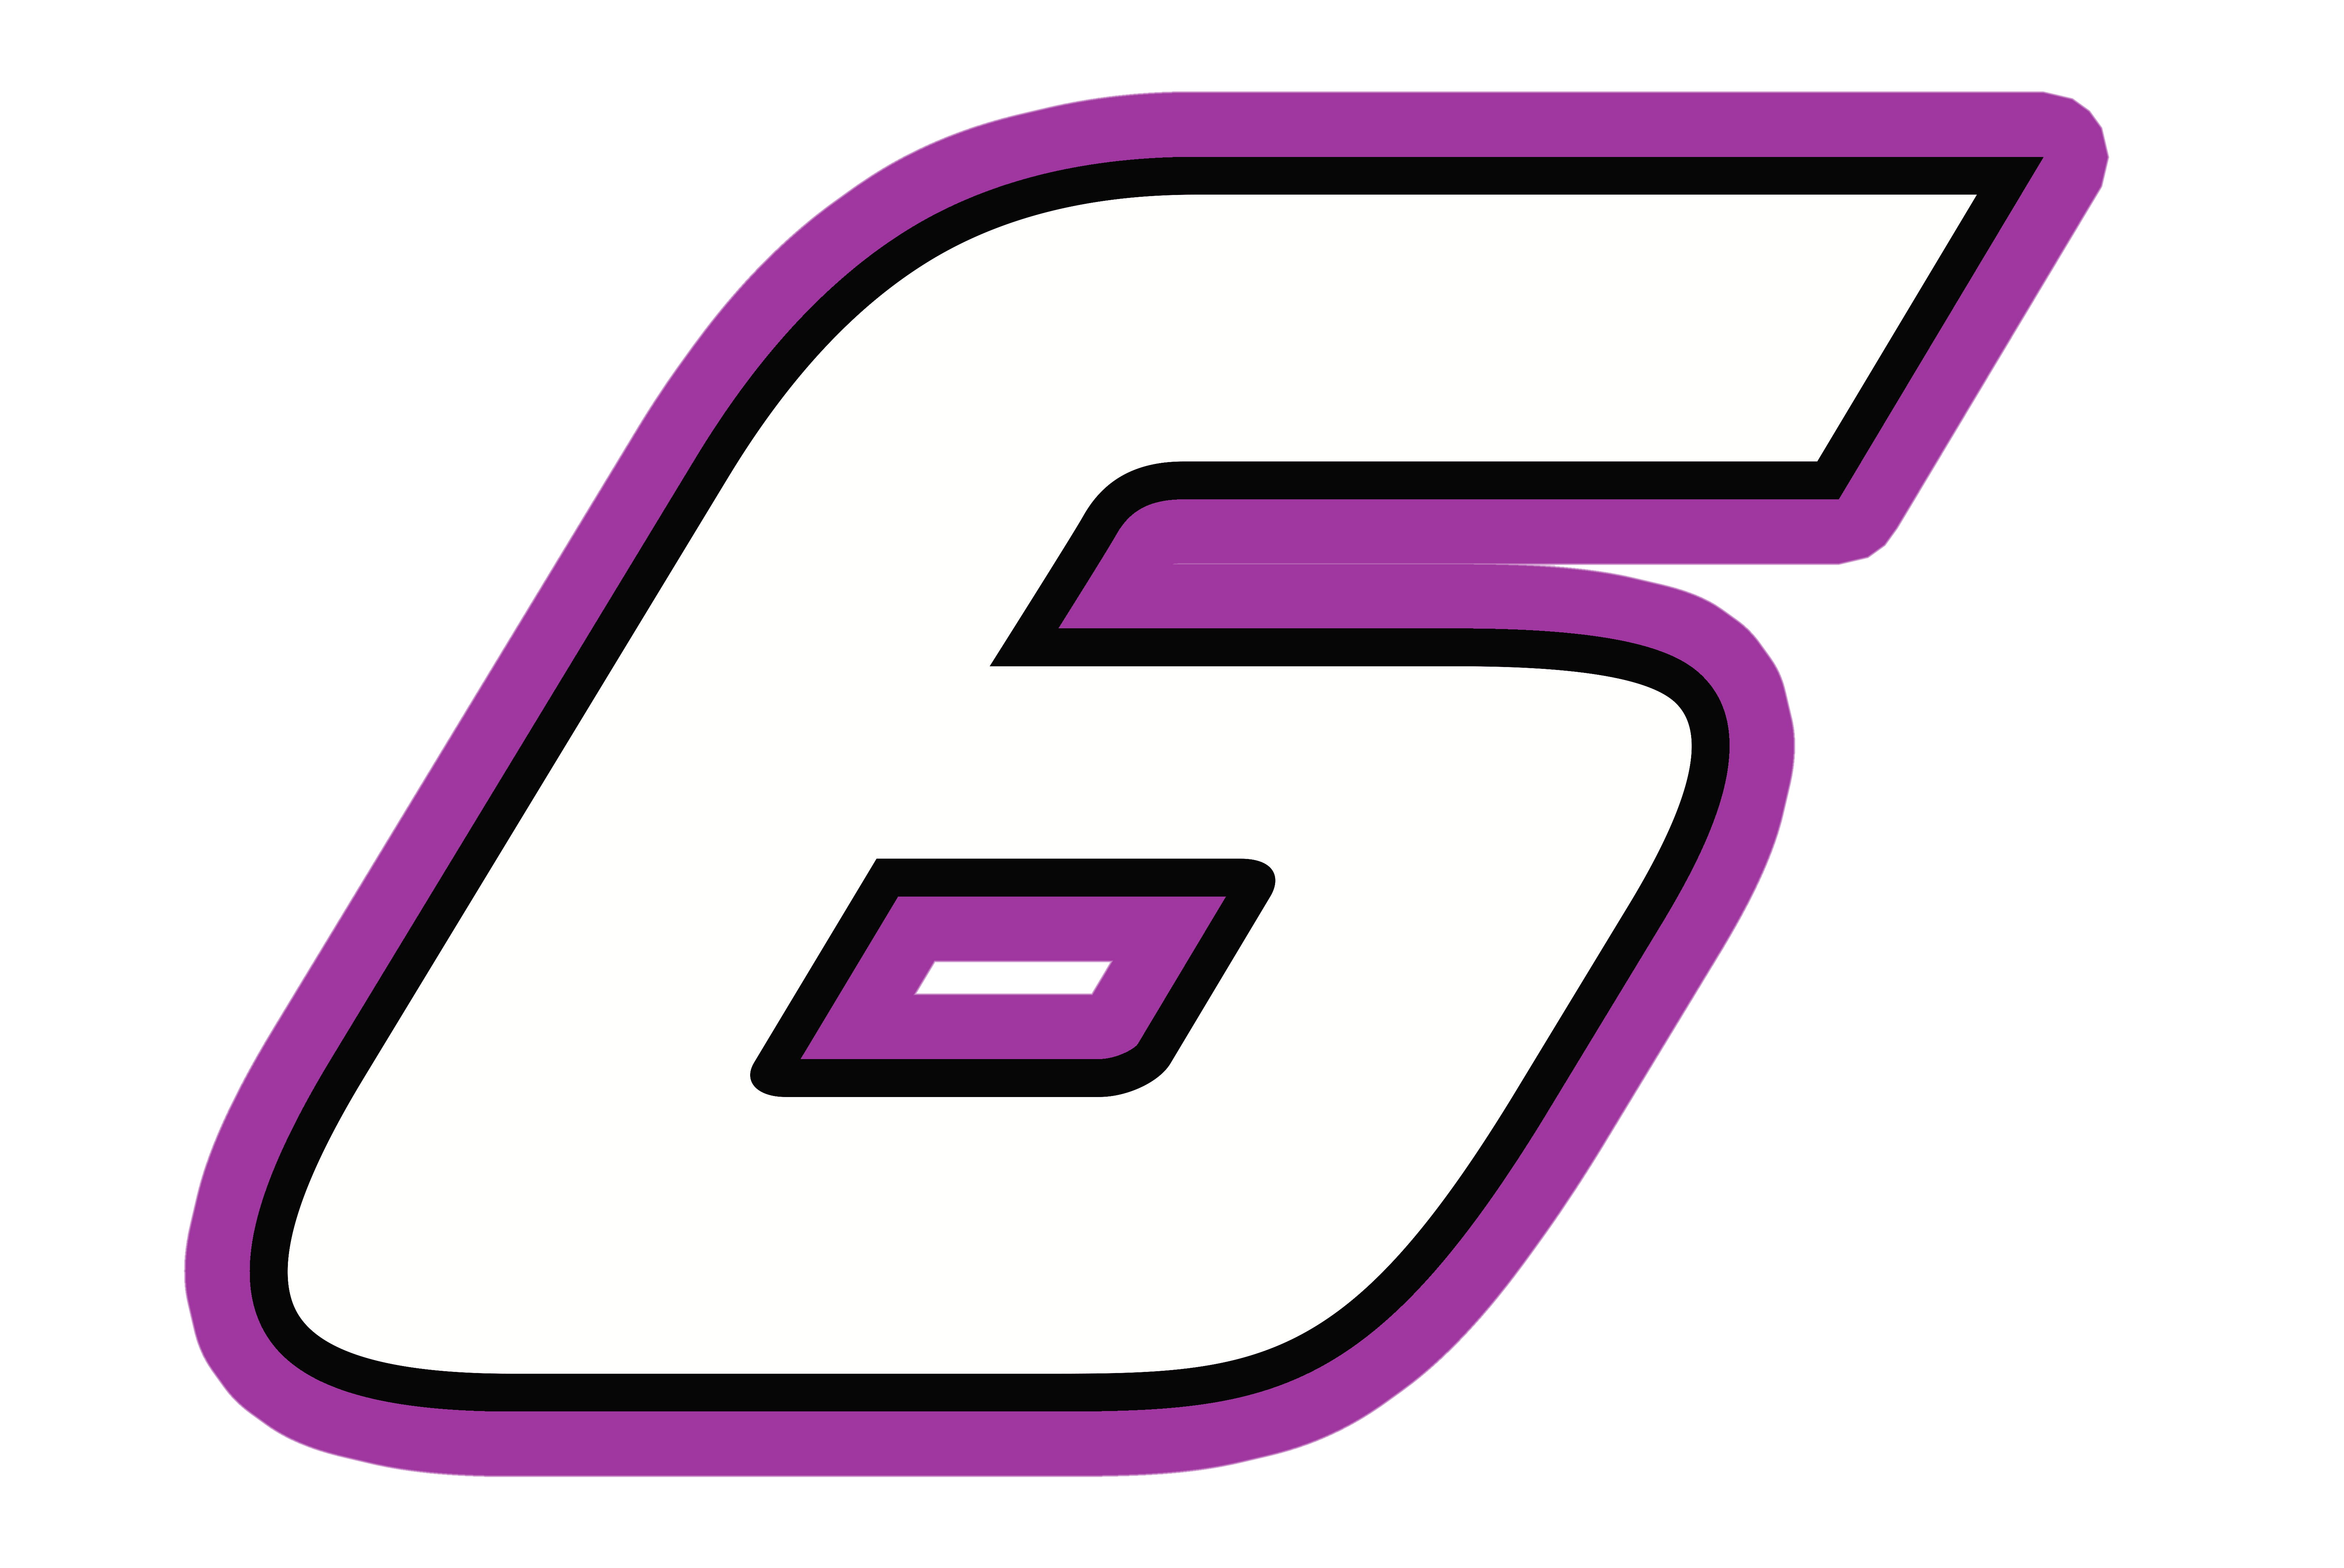 Nascar Car Numbers Logo Png Images.